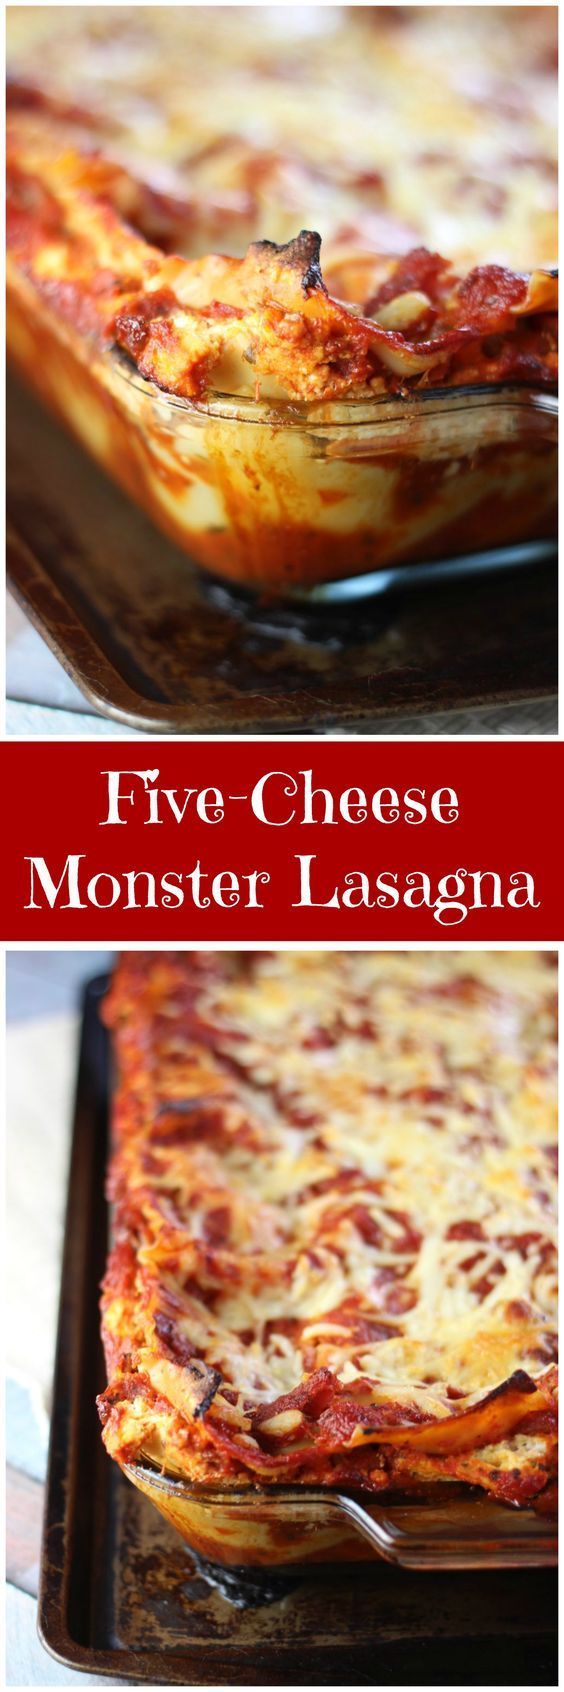 five-cheese lasagna pin We ditched the Ricotta cheese, made up for it with the other cheeses. Made my homemade spaghetti sauce. Super yummy. Will try with Zucchini noodles sometime